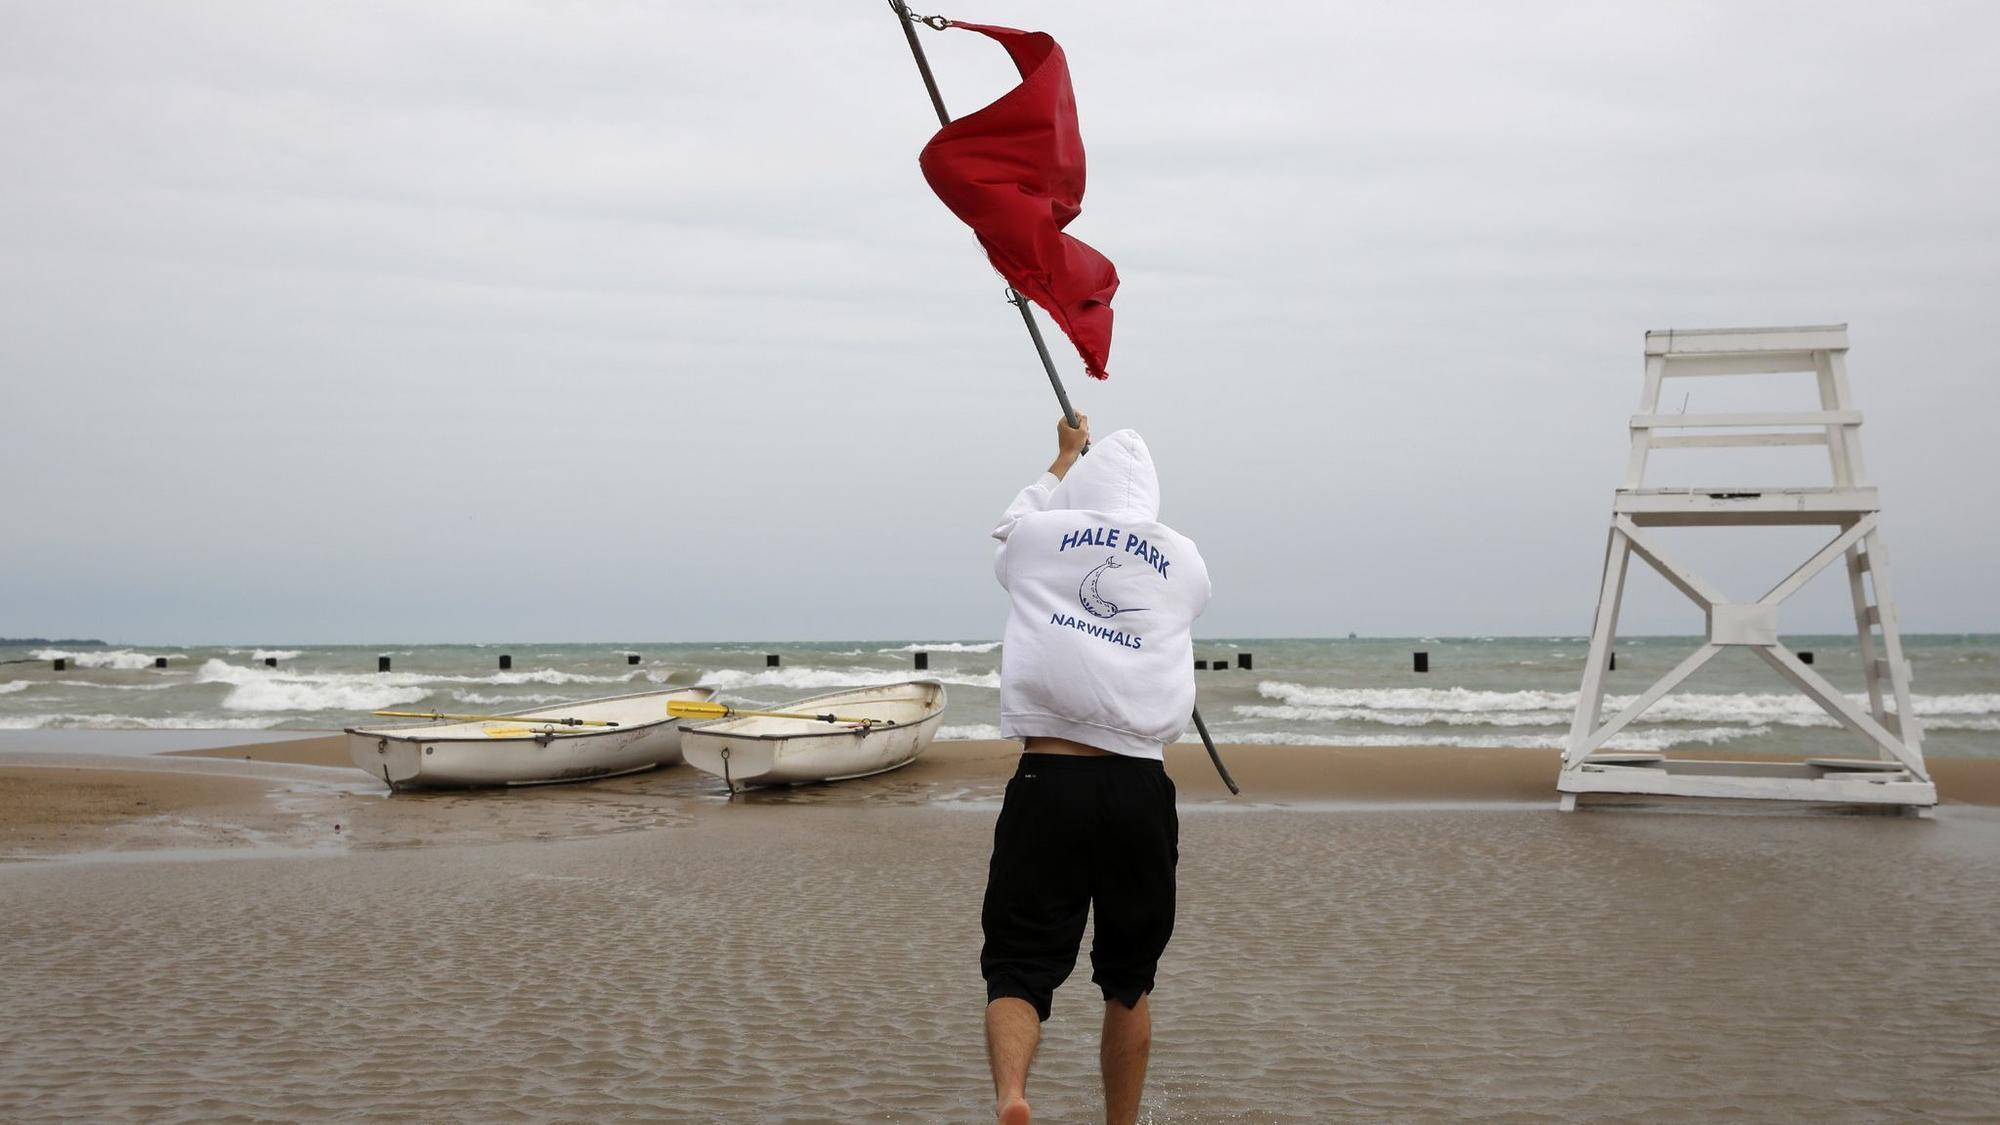 Followings Drowning City Takes Steps That Include Posting Red Flag When Lifeguards Not On Duty Chicago Tribune